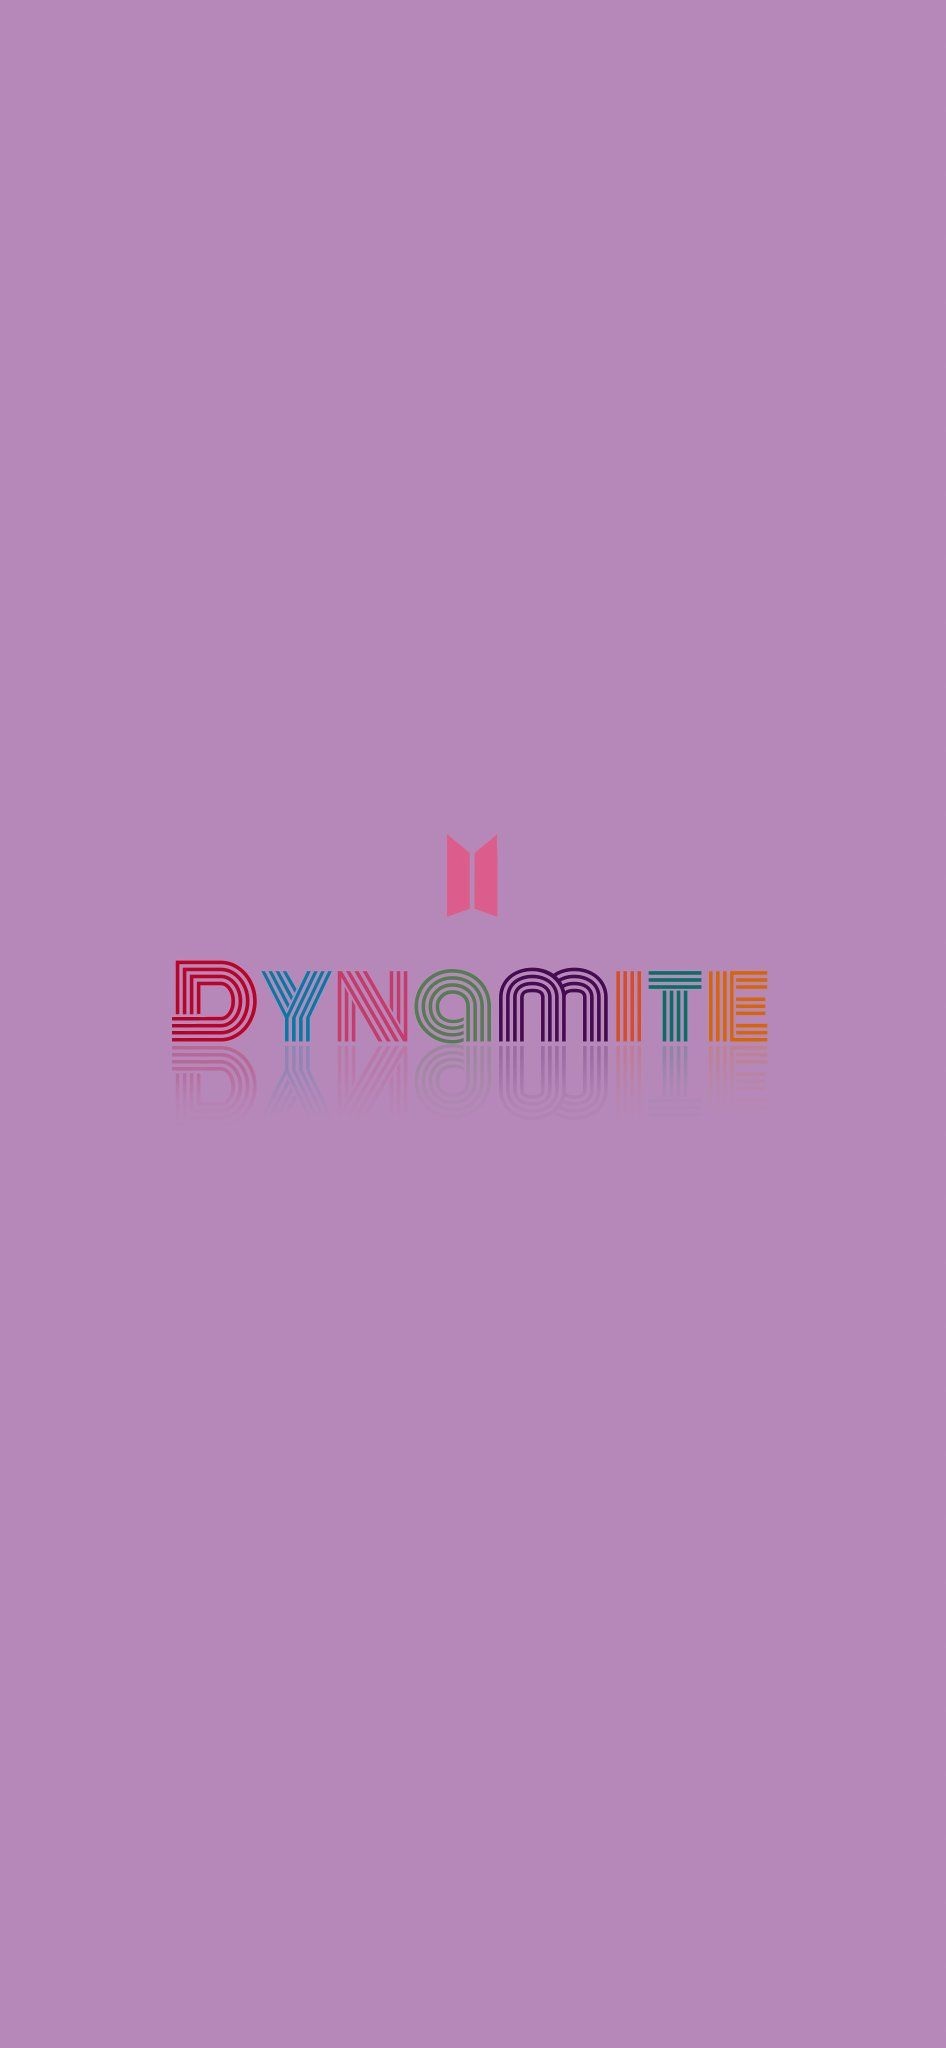 Bts Dynamite Wallpaper Lockscreen Edit Di 2020 Wallpaper Lucu Orang Lucu Latar Belakang